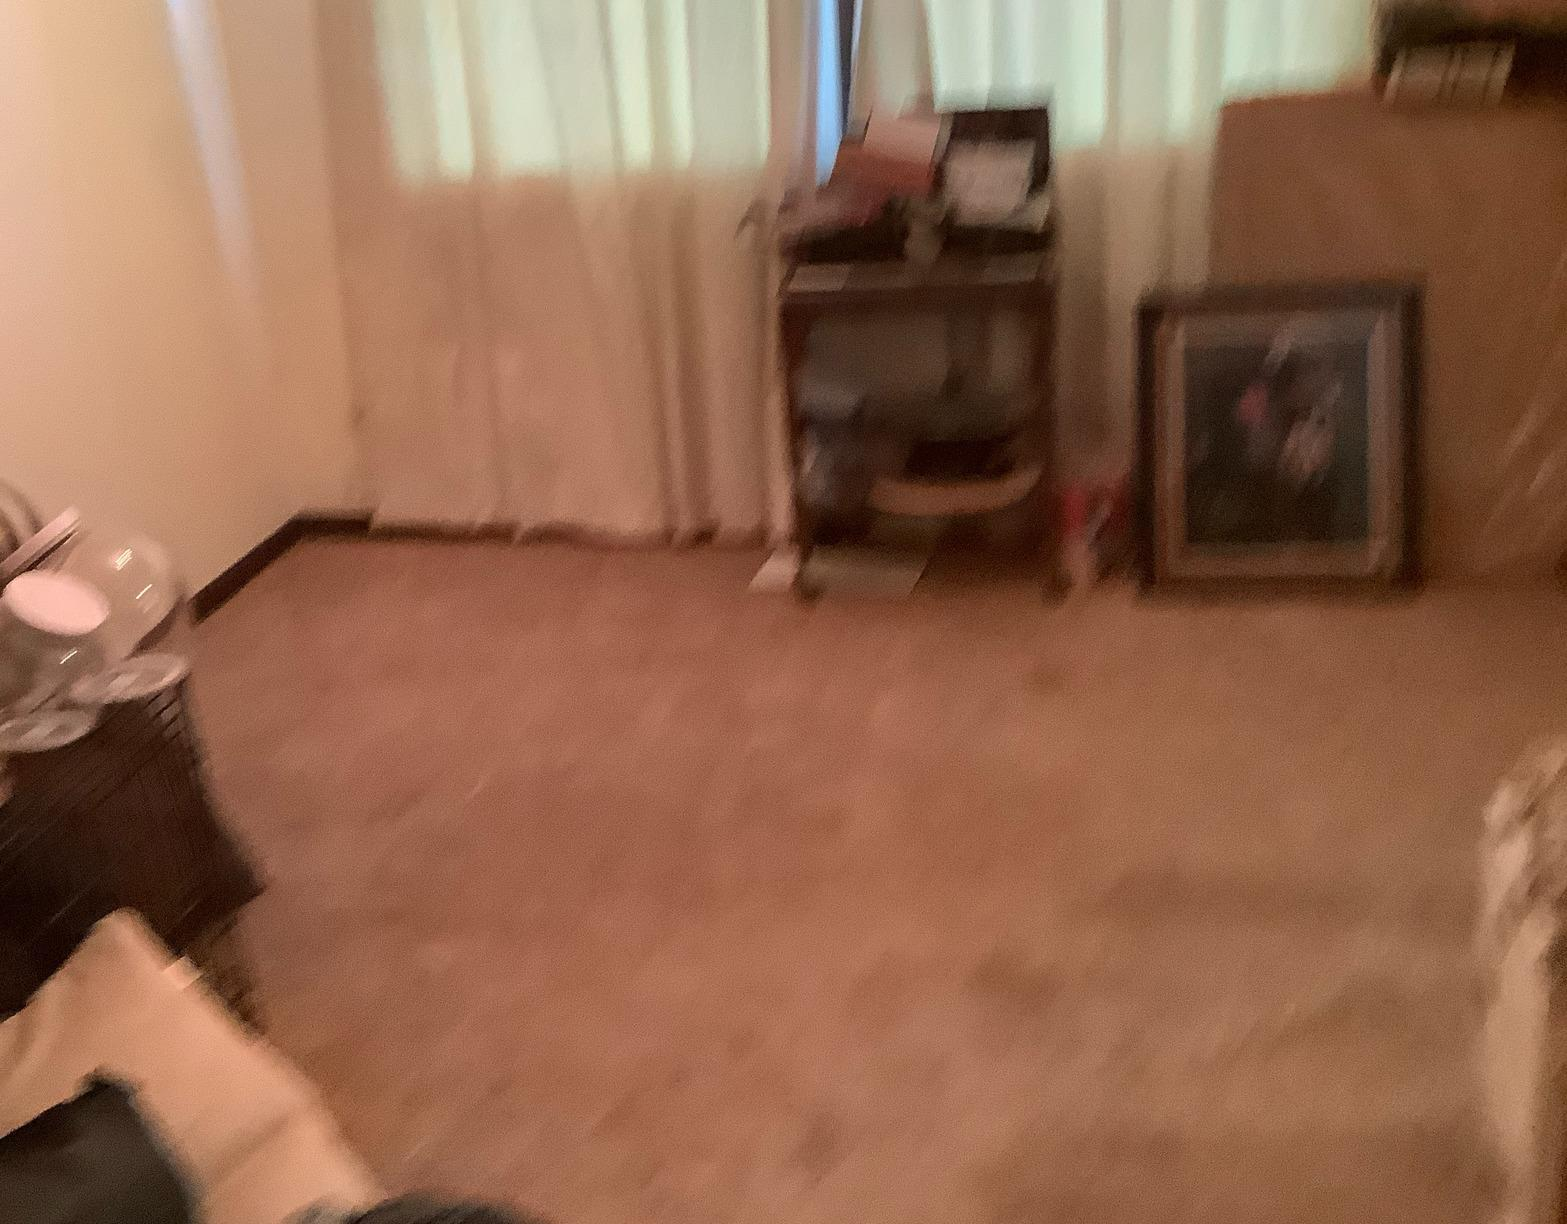 Furniture Removal in Bartlett, IL - After Photo